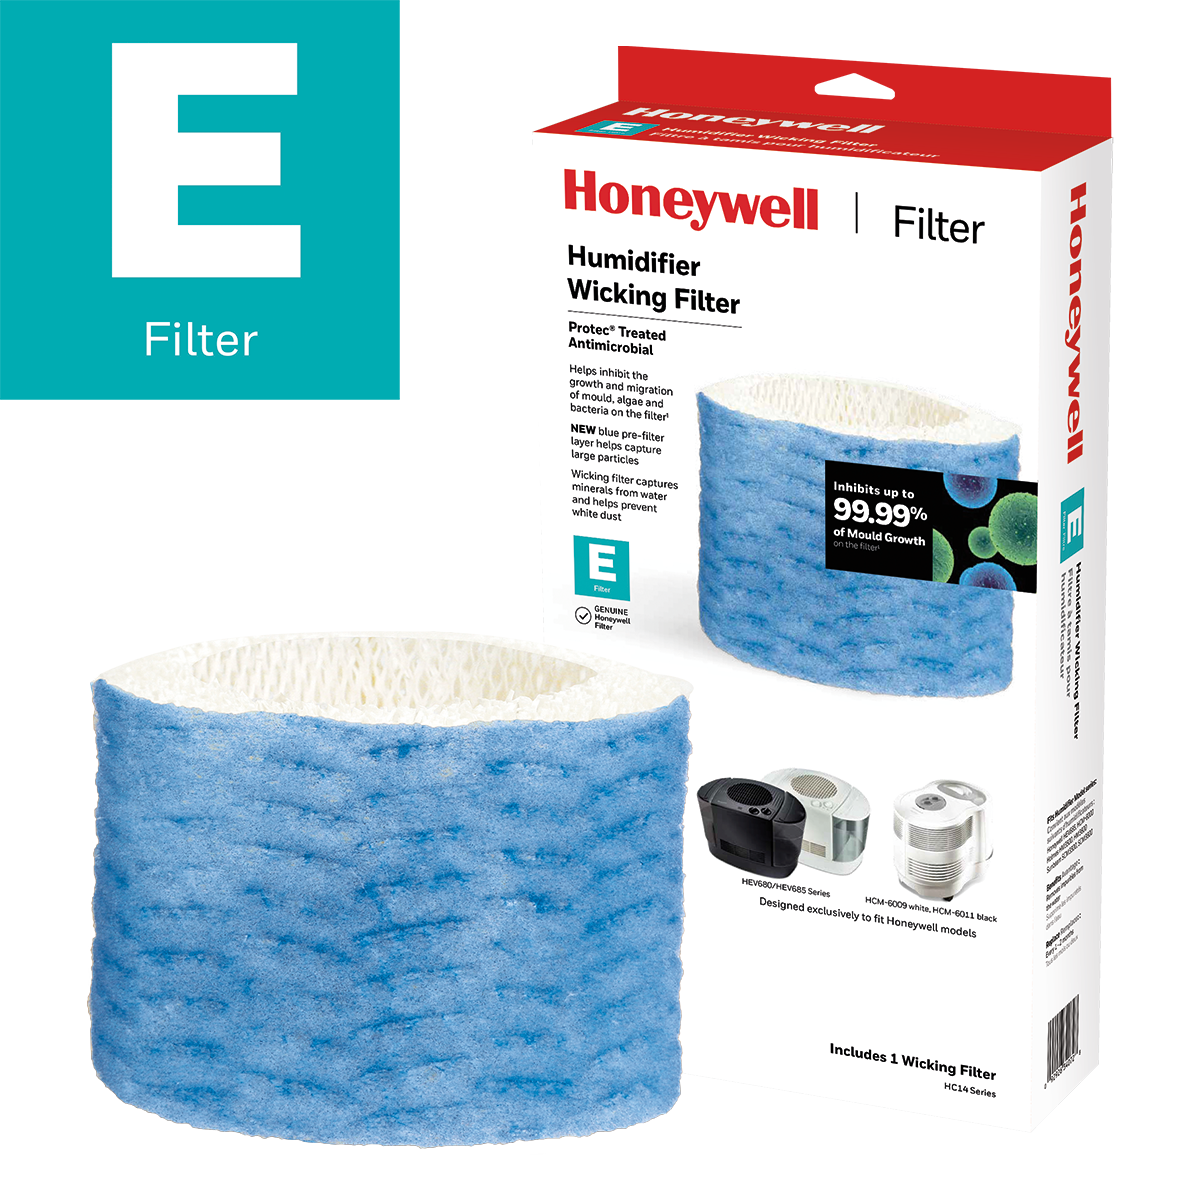 Honeywell HC14PFC Replacement Wicking Humidifier Filter, Filter E